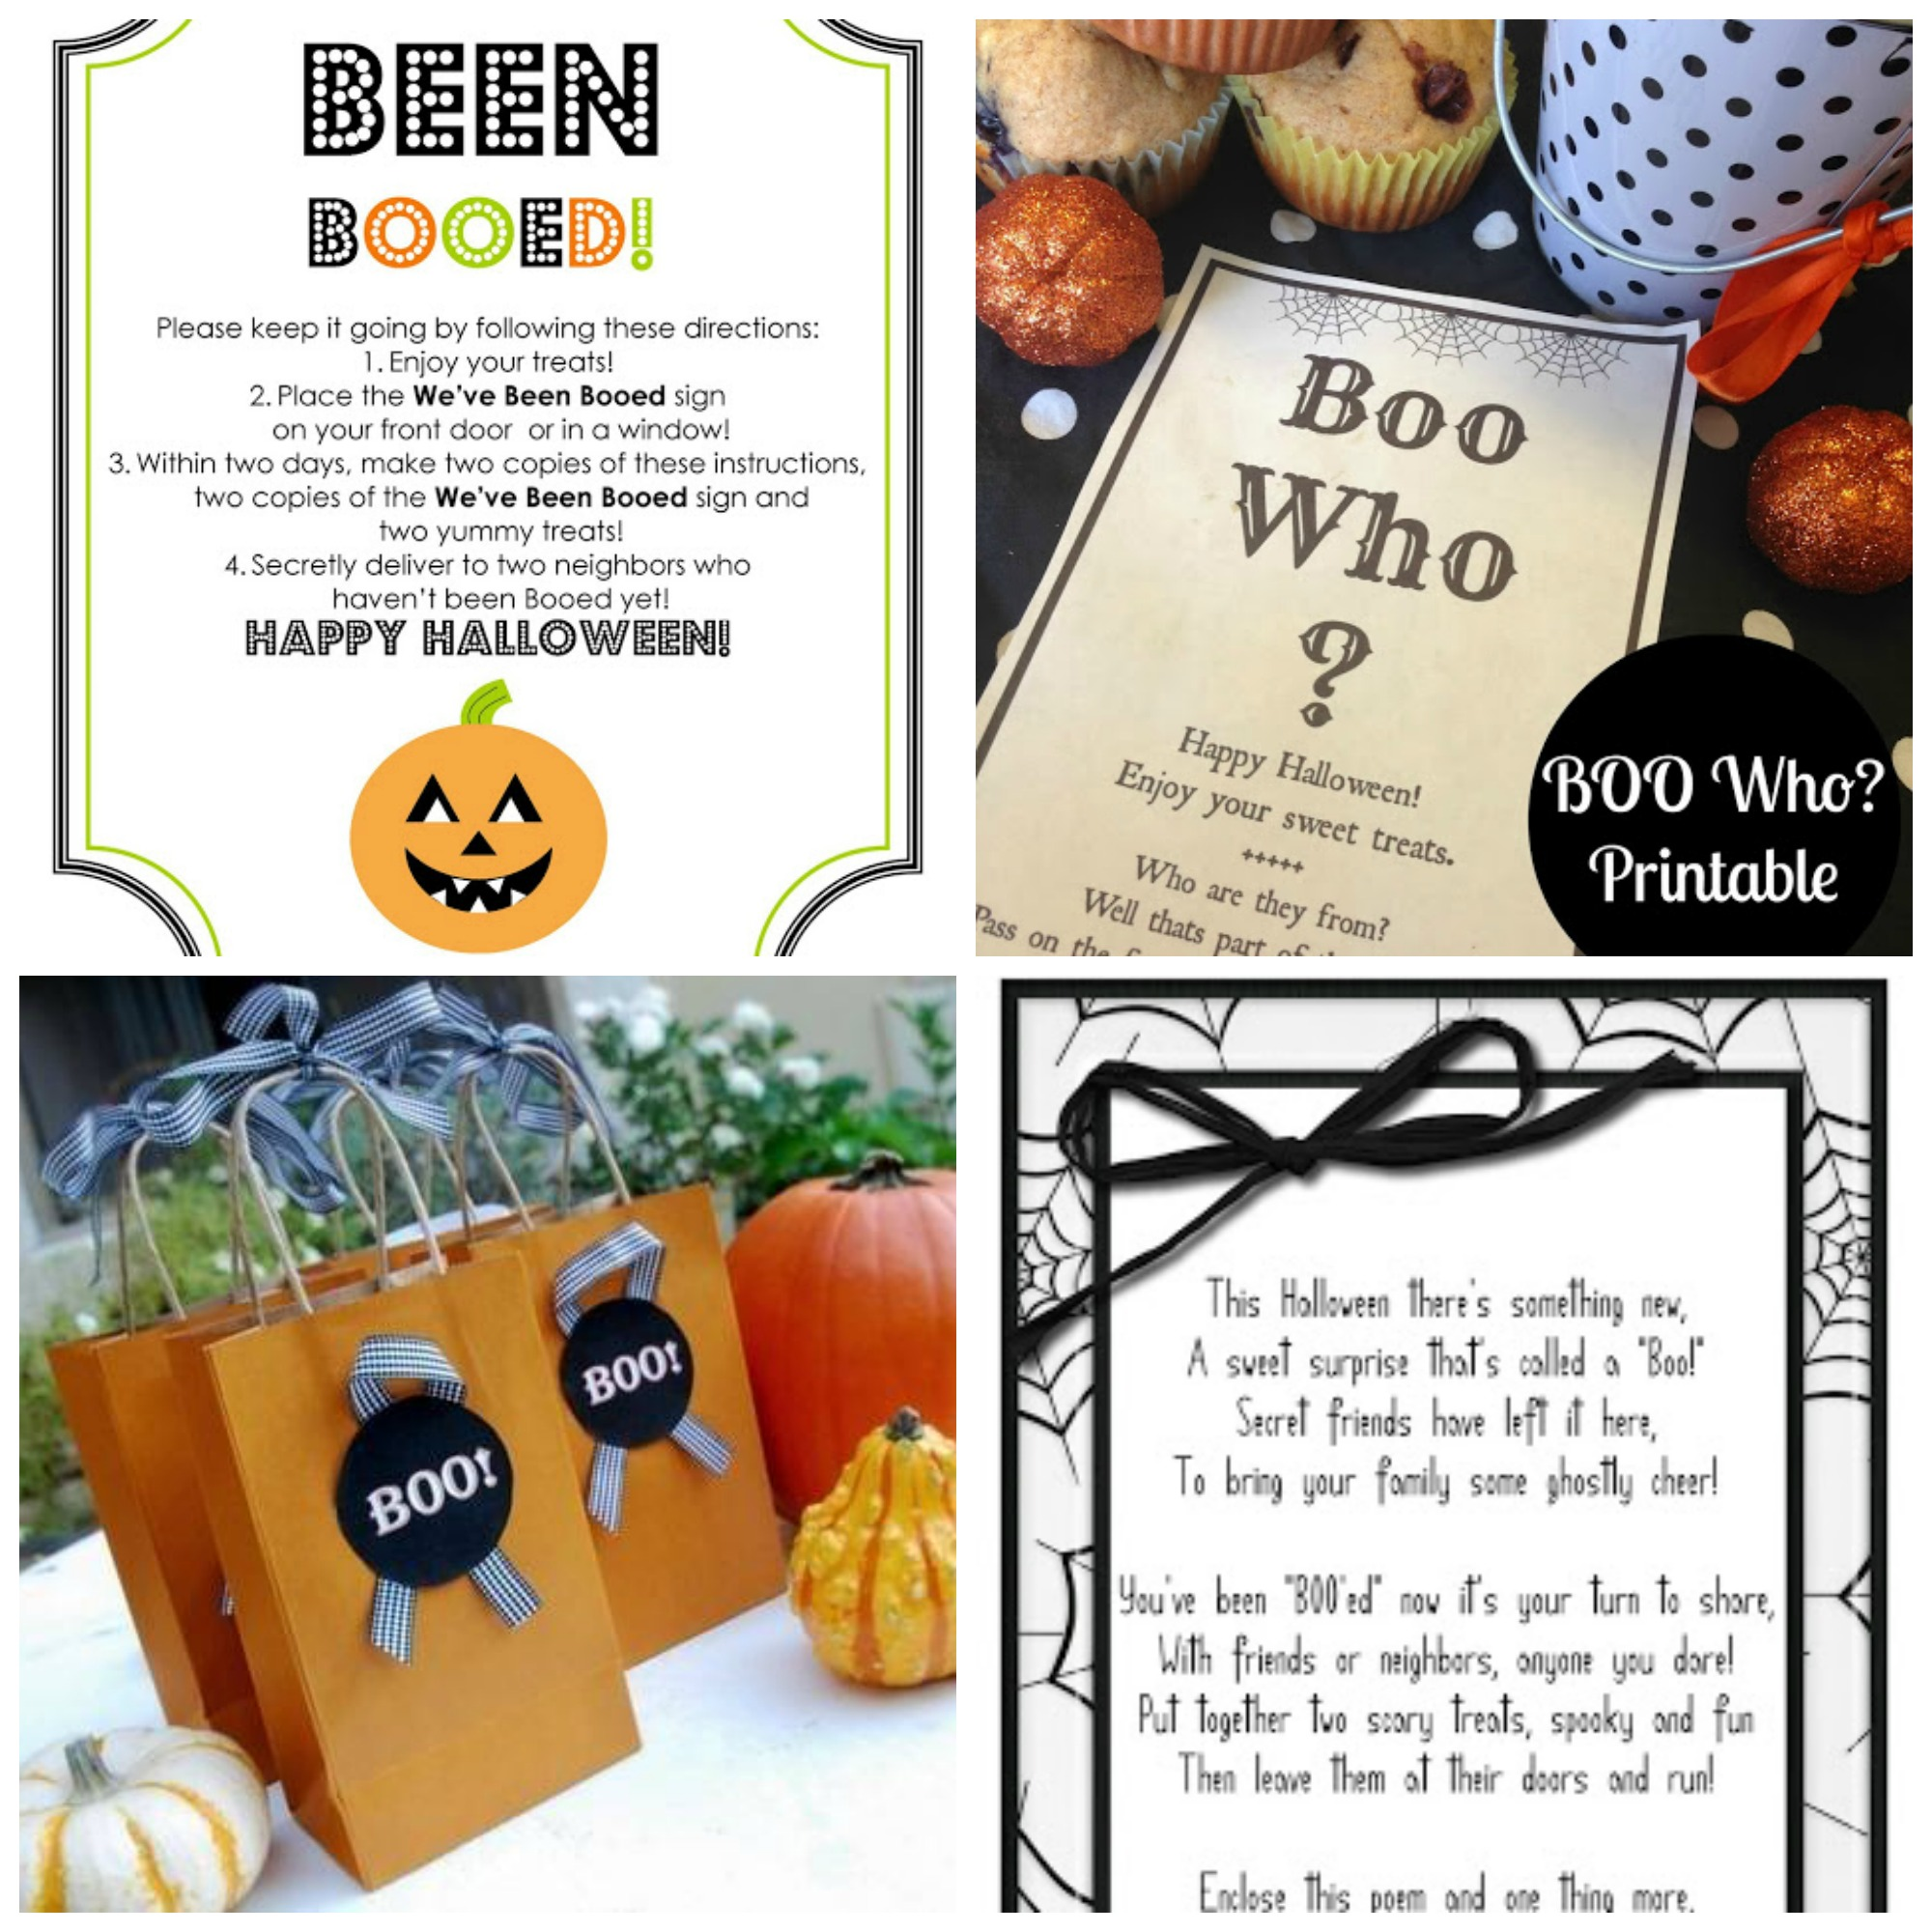 image about You Ve Been Booed Free Printable named 12 Cost-free Youve Been Booed Halloween Printables - My Frugal